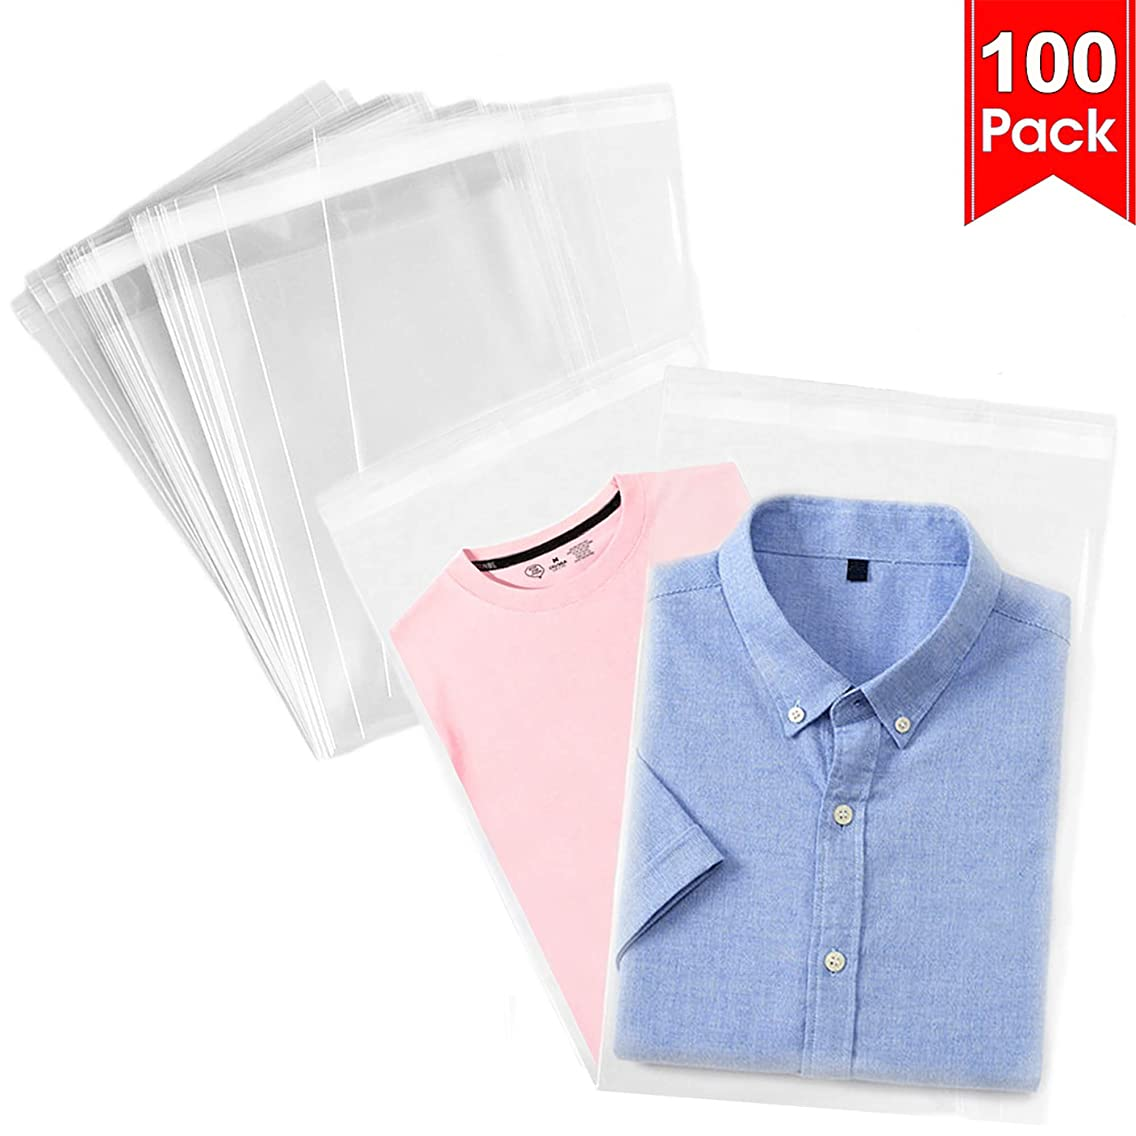 100 Pcs 11x15 Clear Resealable Cello Bags Tape Strip on Lip Glossy Self Sealing OPP Polypropylene Plastic Bags for Decorative Christmas Wedding Gift Basket Supplies(11x15 inches)